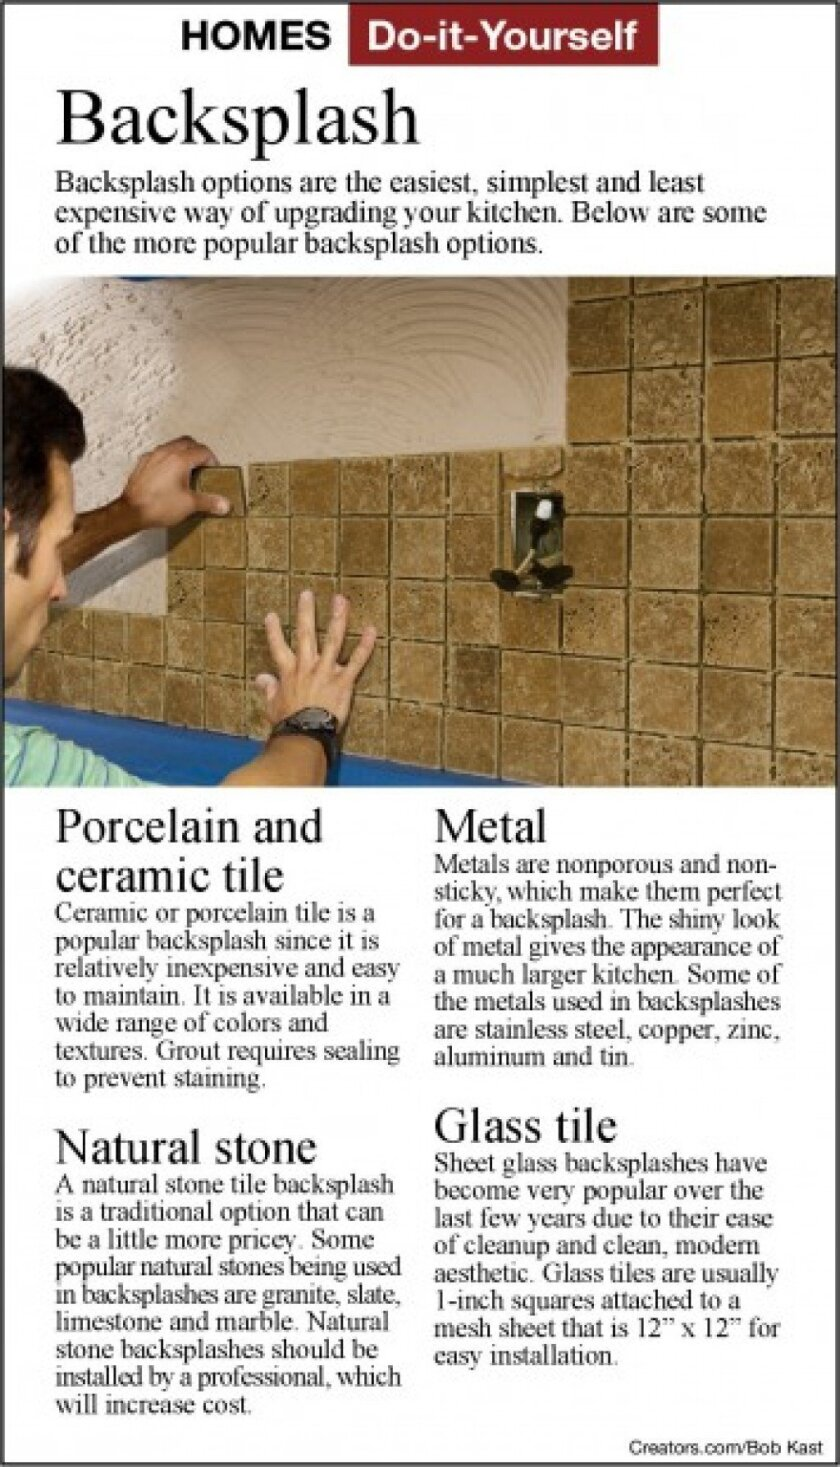 - Here's How: Tile A Kitchen Countertop Backsplash - The San Diego